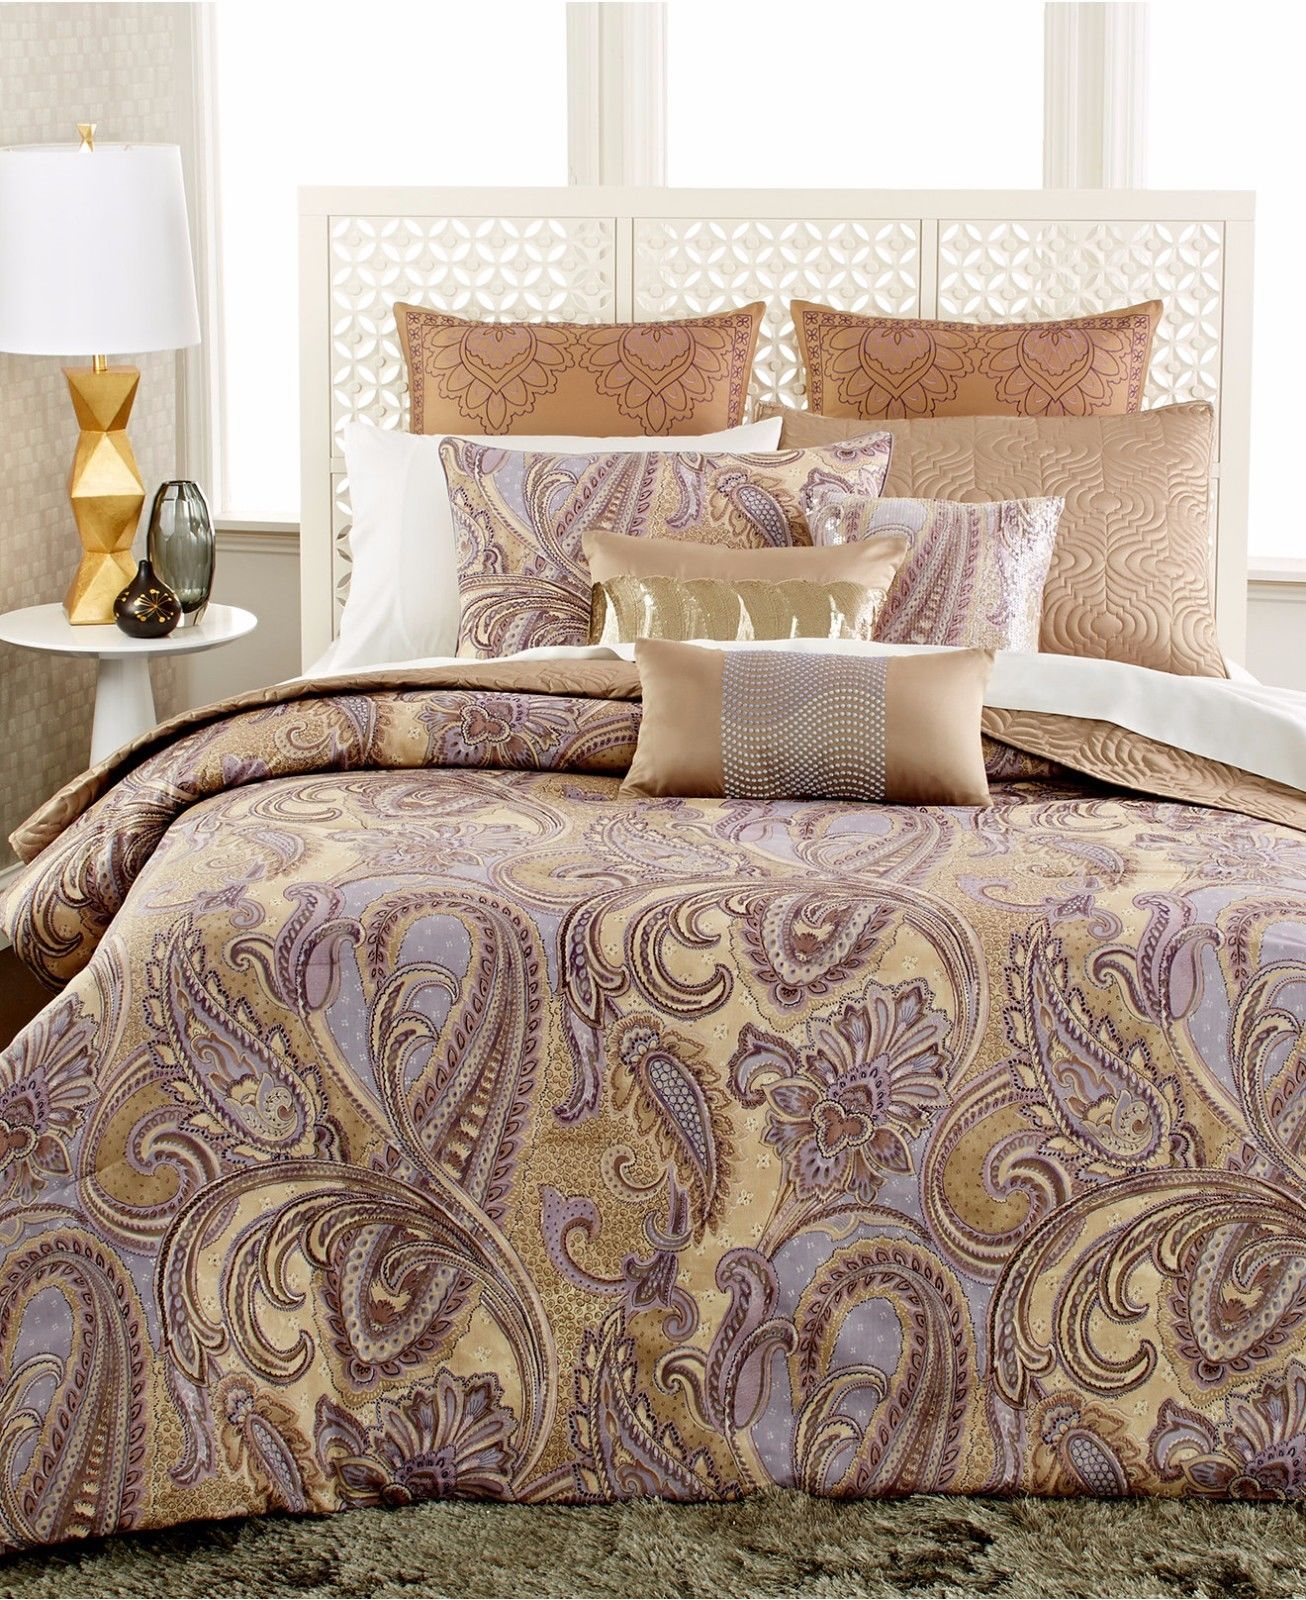 INC Messina Queen 4 Piece Duvet Set SOC 864